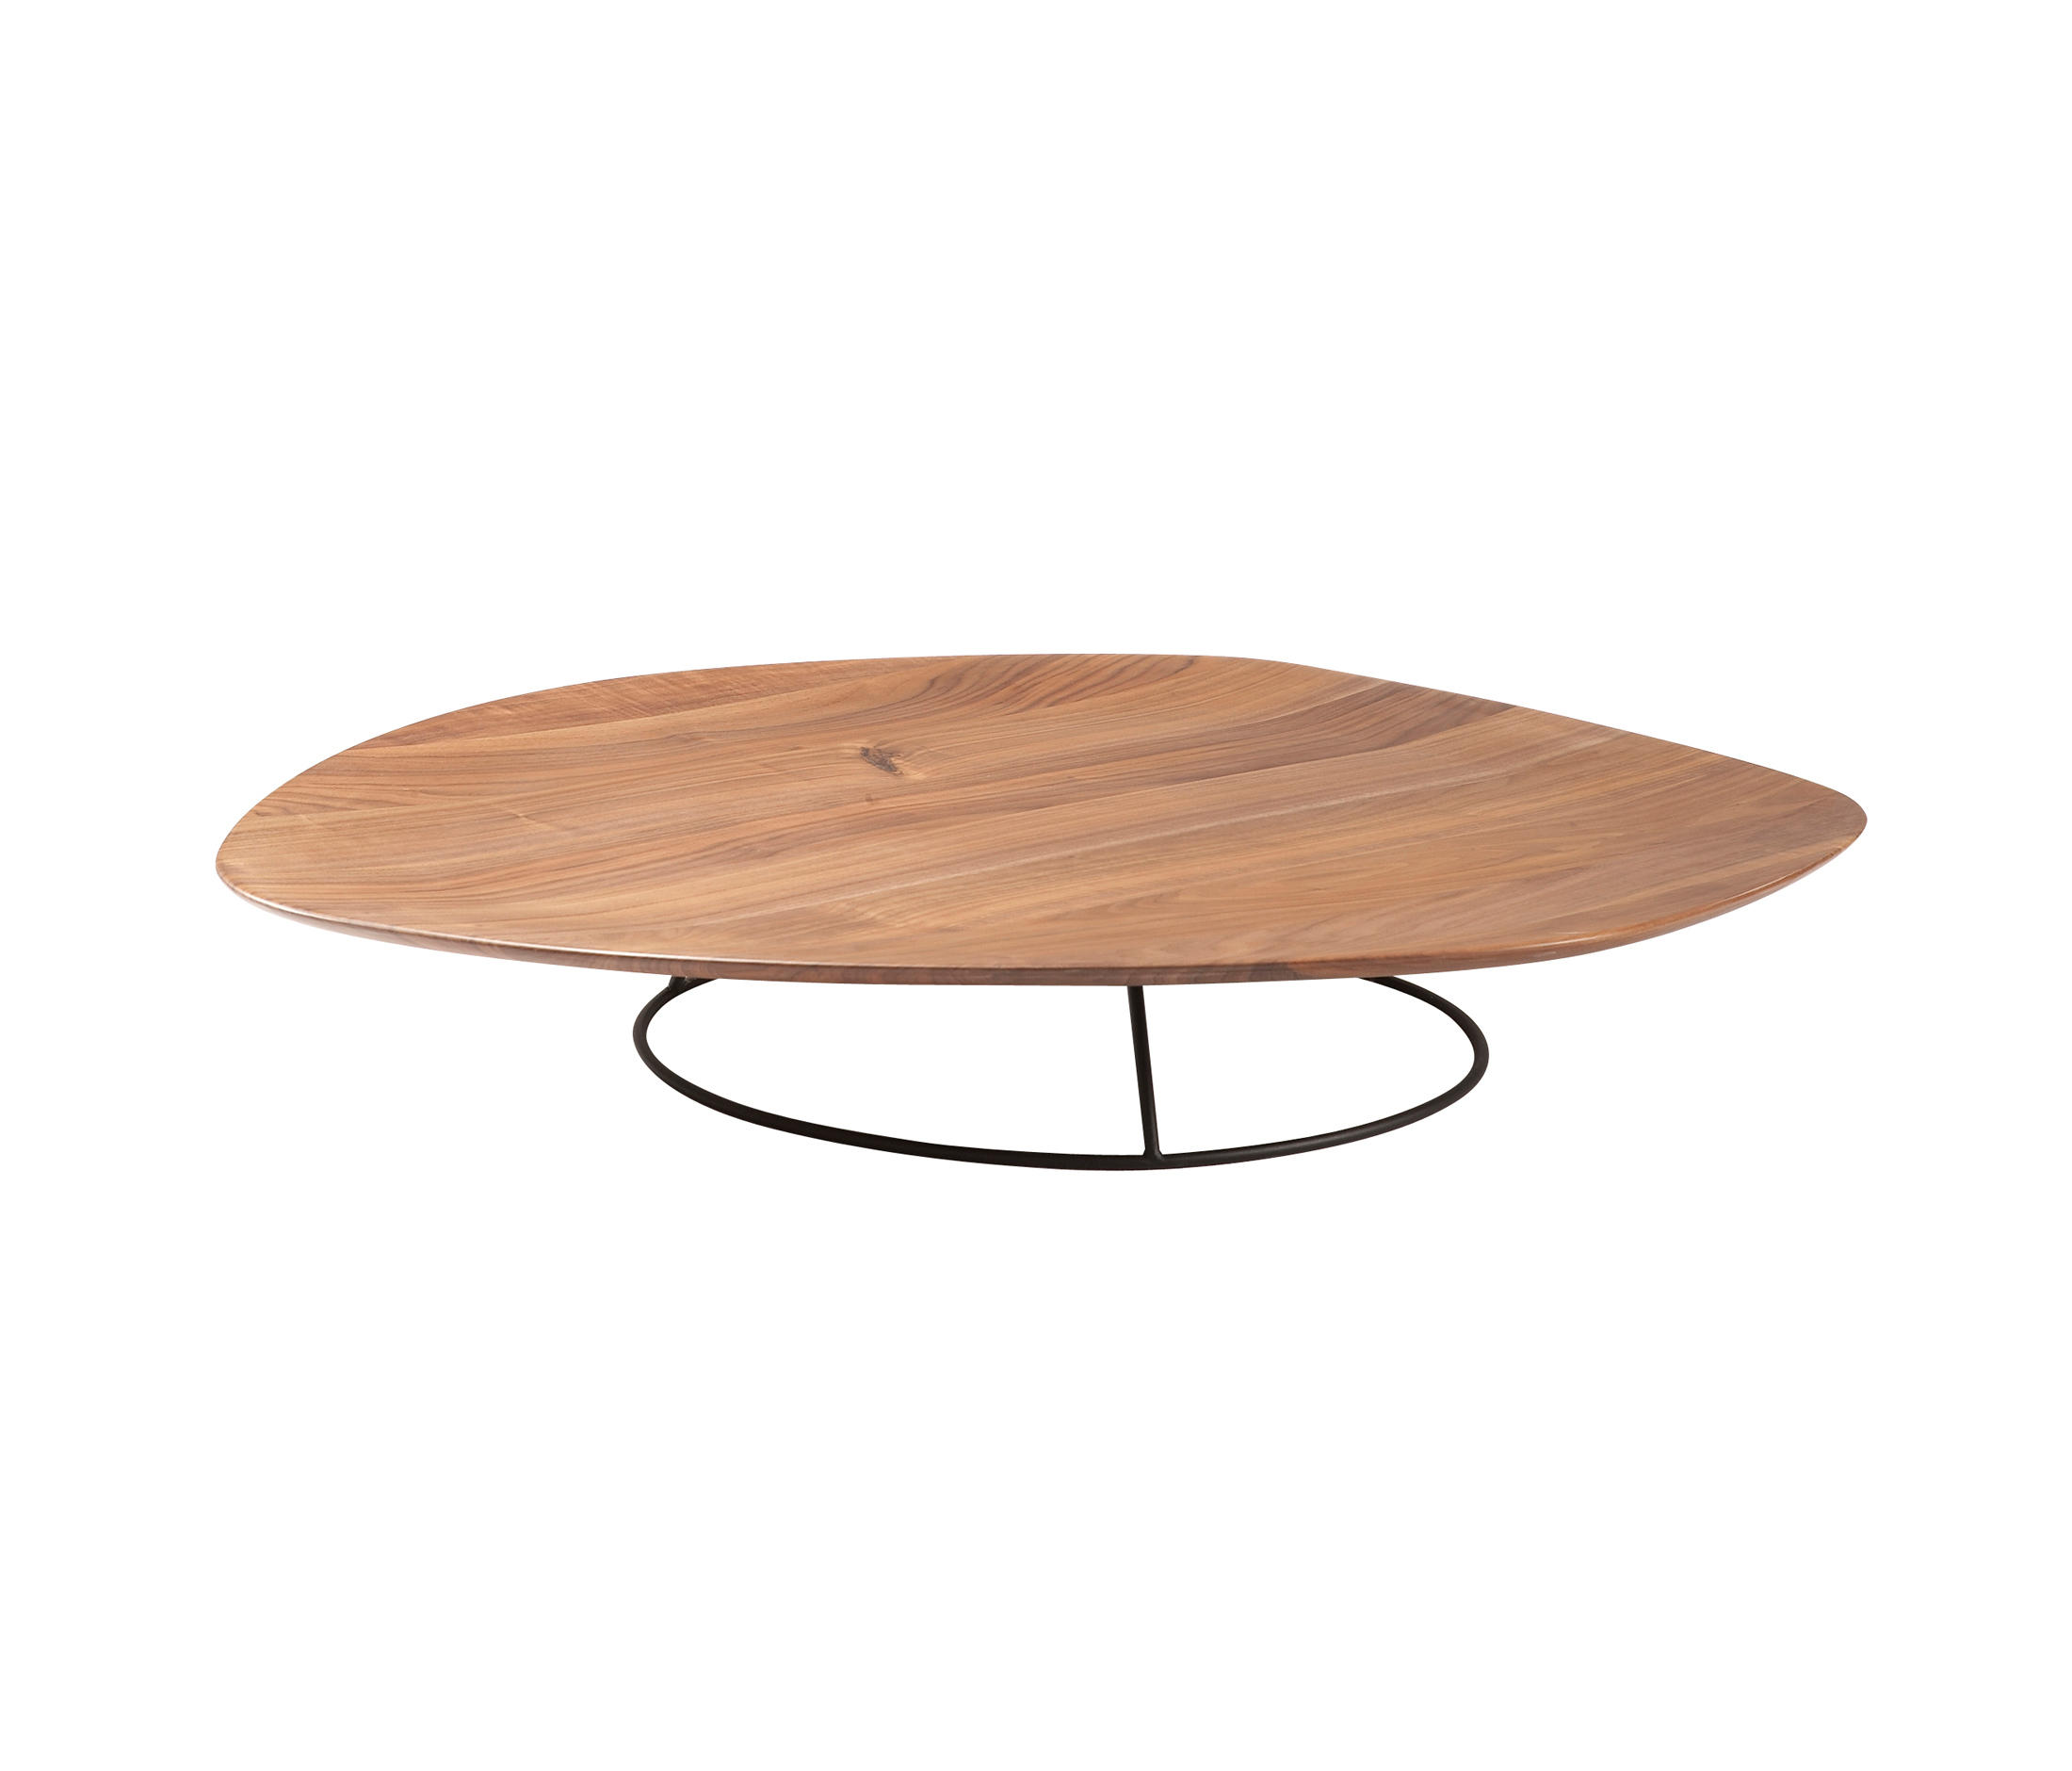 PEBBLE Coffee tables from Ligne Roset Architonic